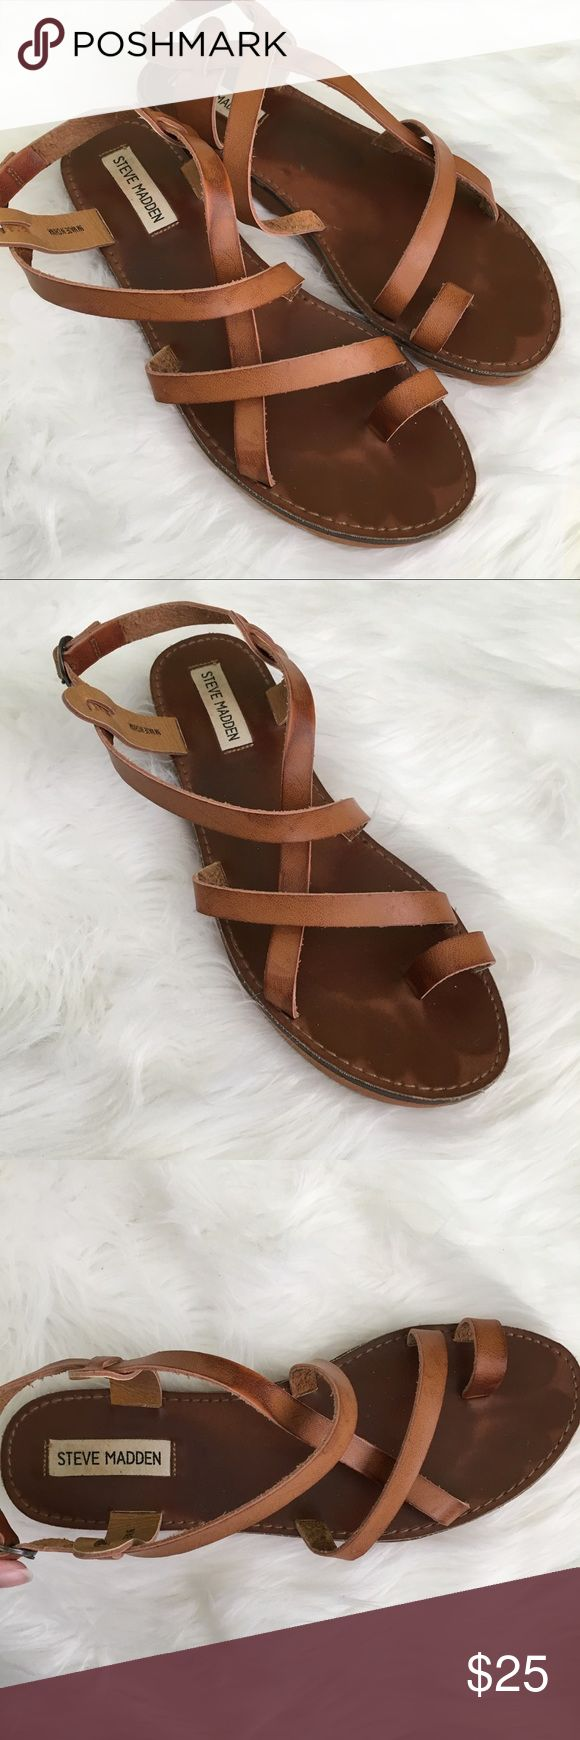 Steve Madden Brown Leather Strappy Sandals